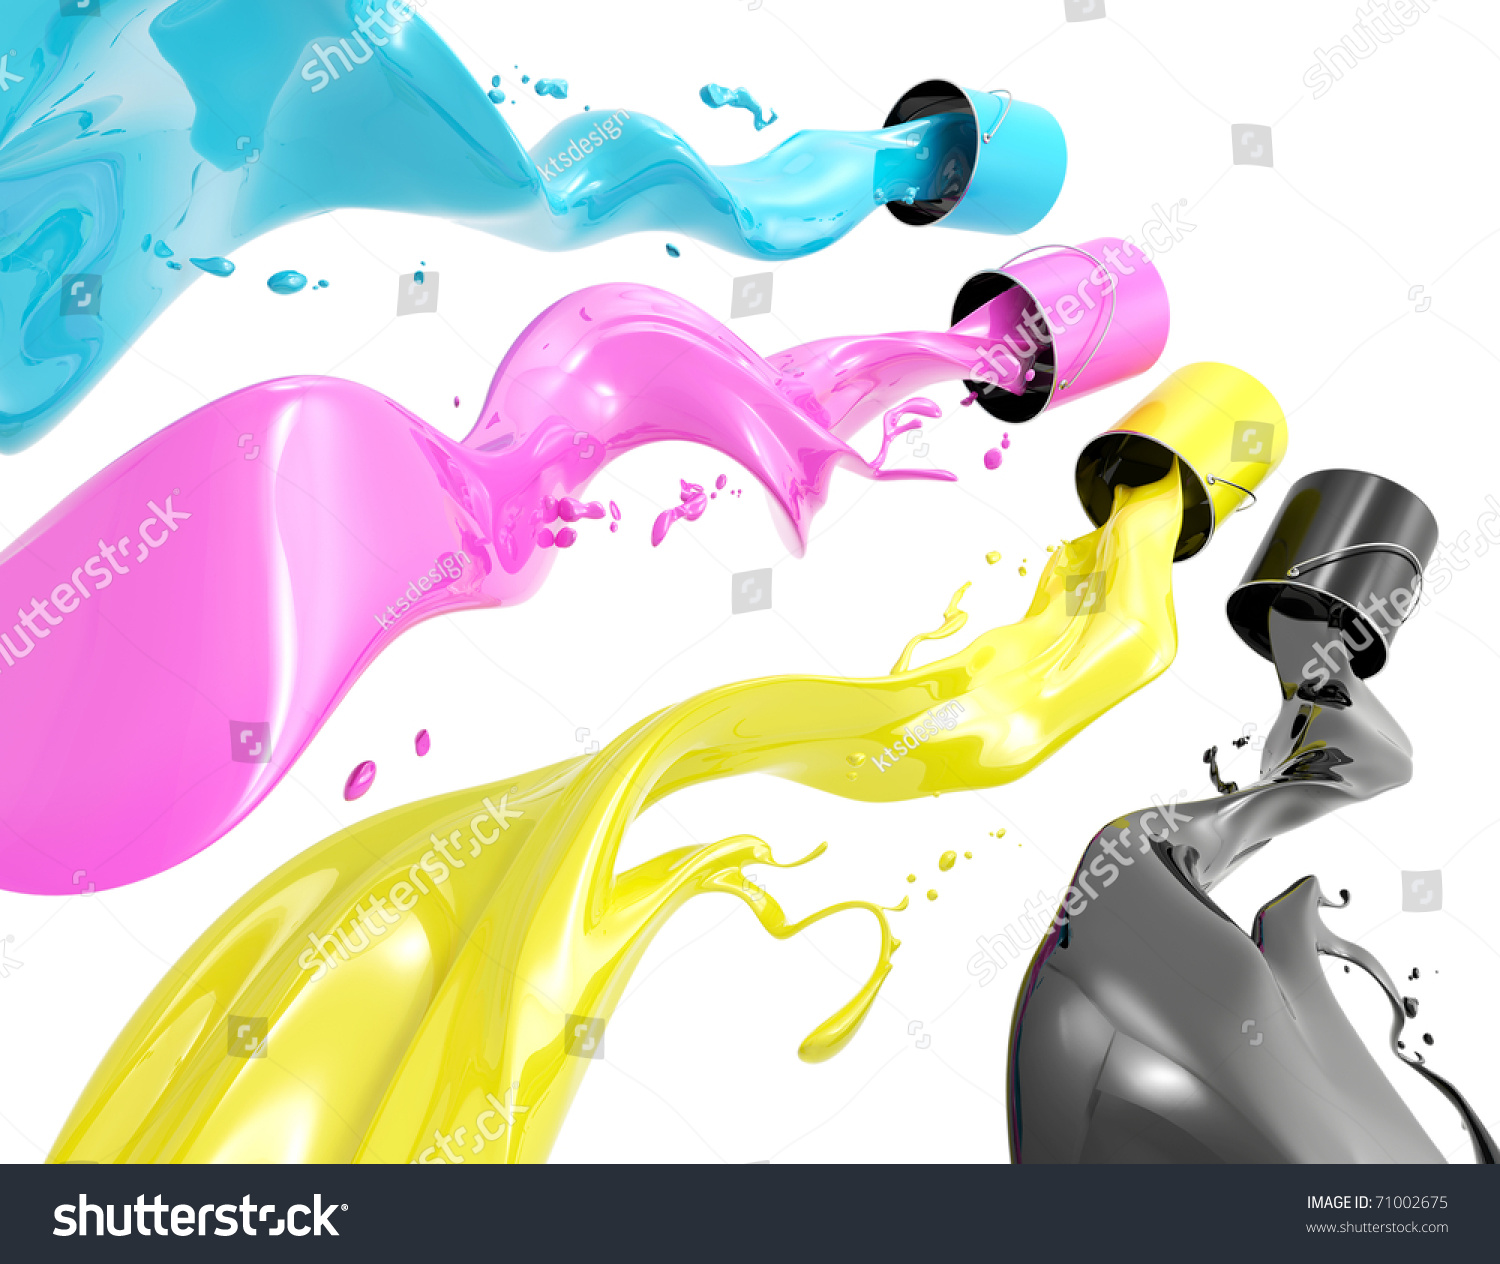 Color of art definition - Definition Of Cmyk Color System Four Colors In The Form Of Liquid On A White